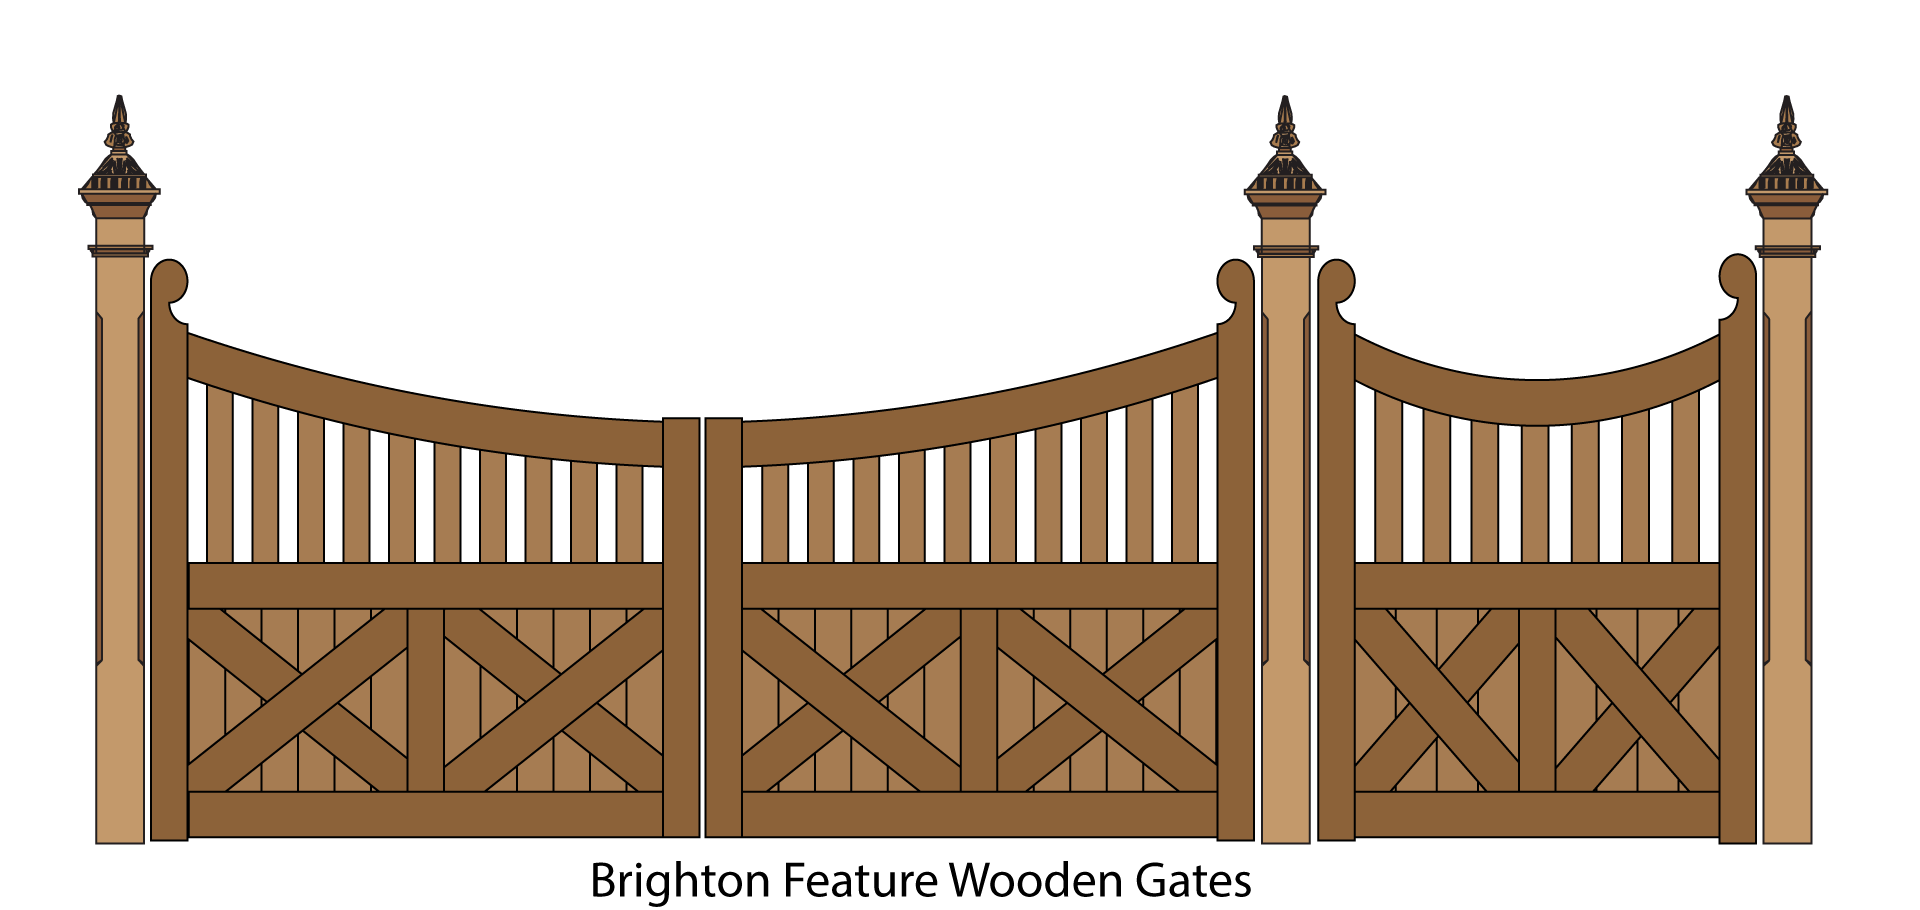 House pictures clipart with driveway clipart black and white Wooden Gates, Picket Gates and Timber gate design clipart black and white